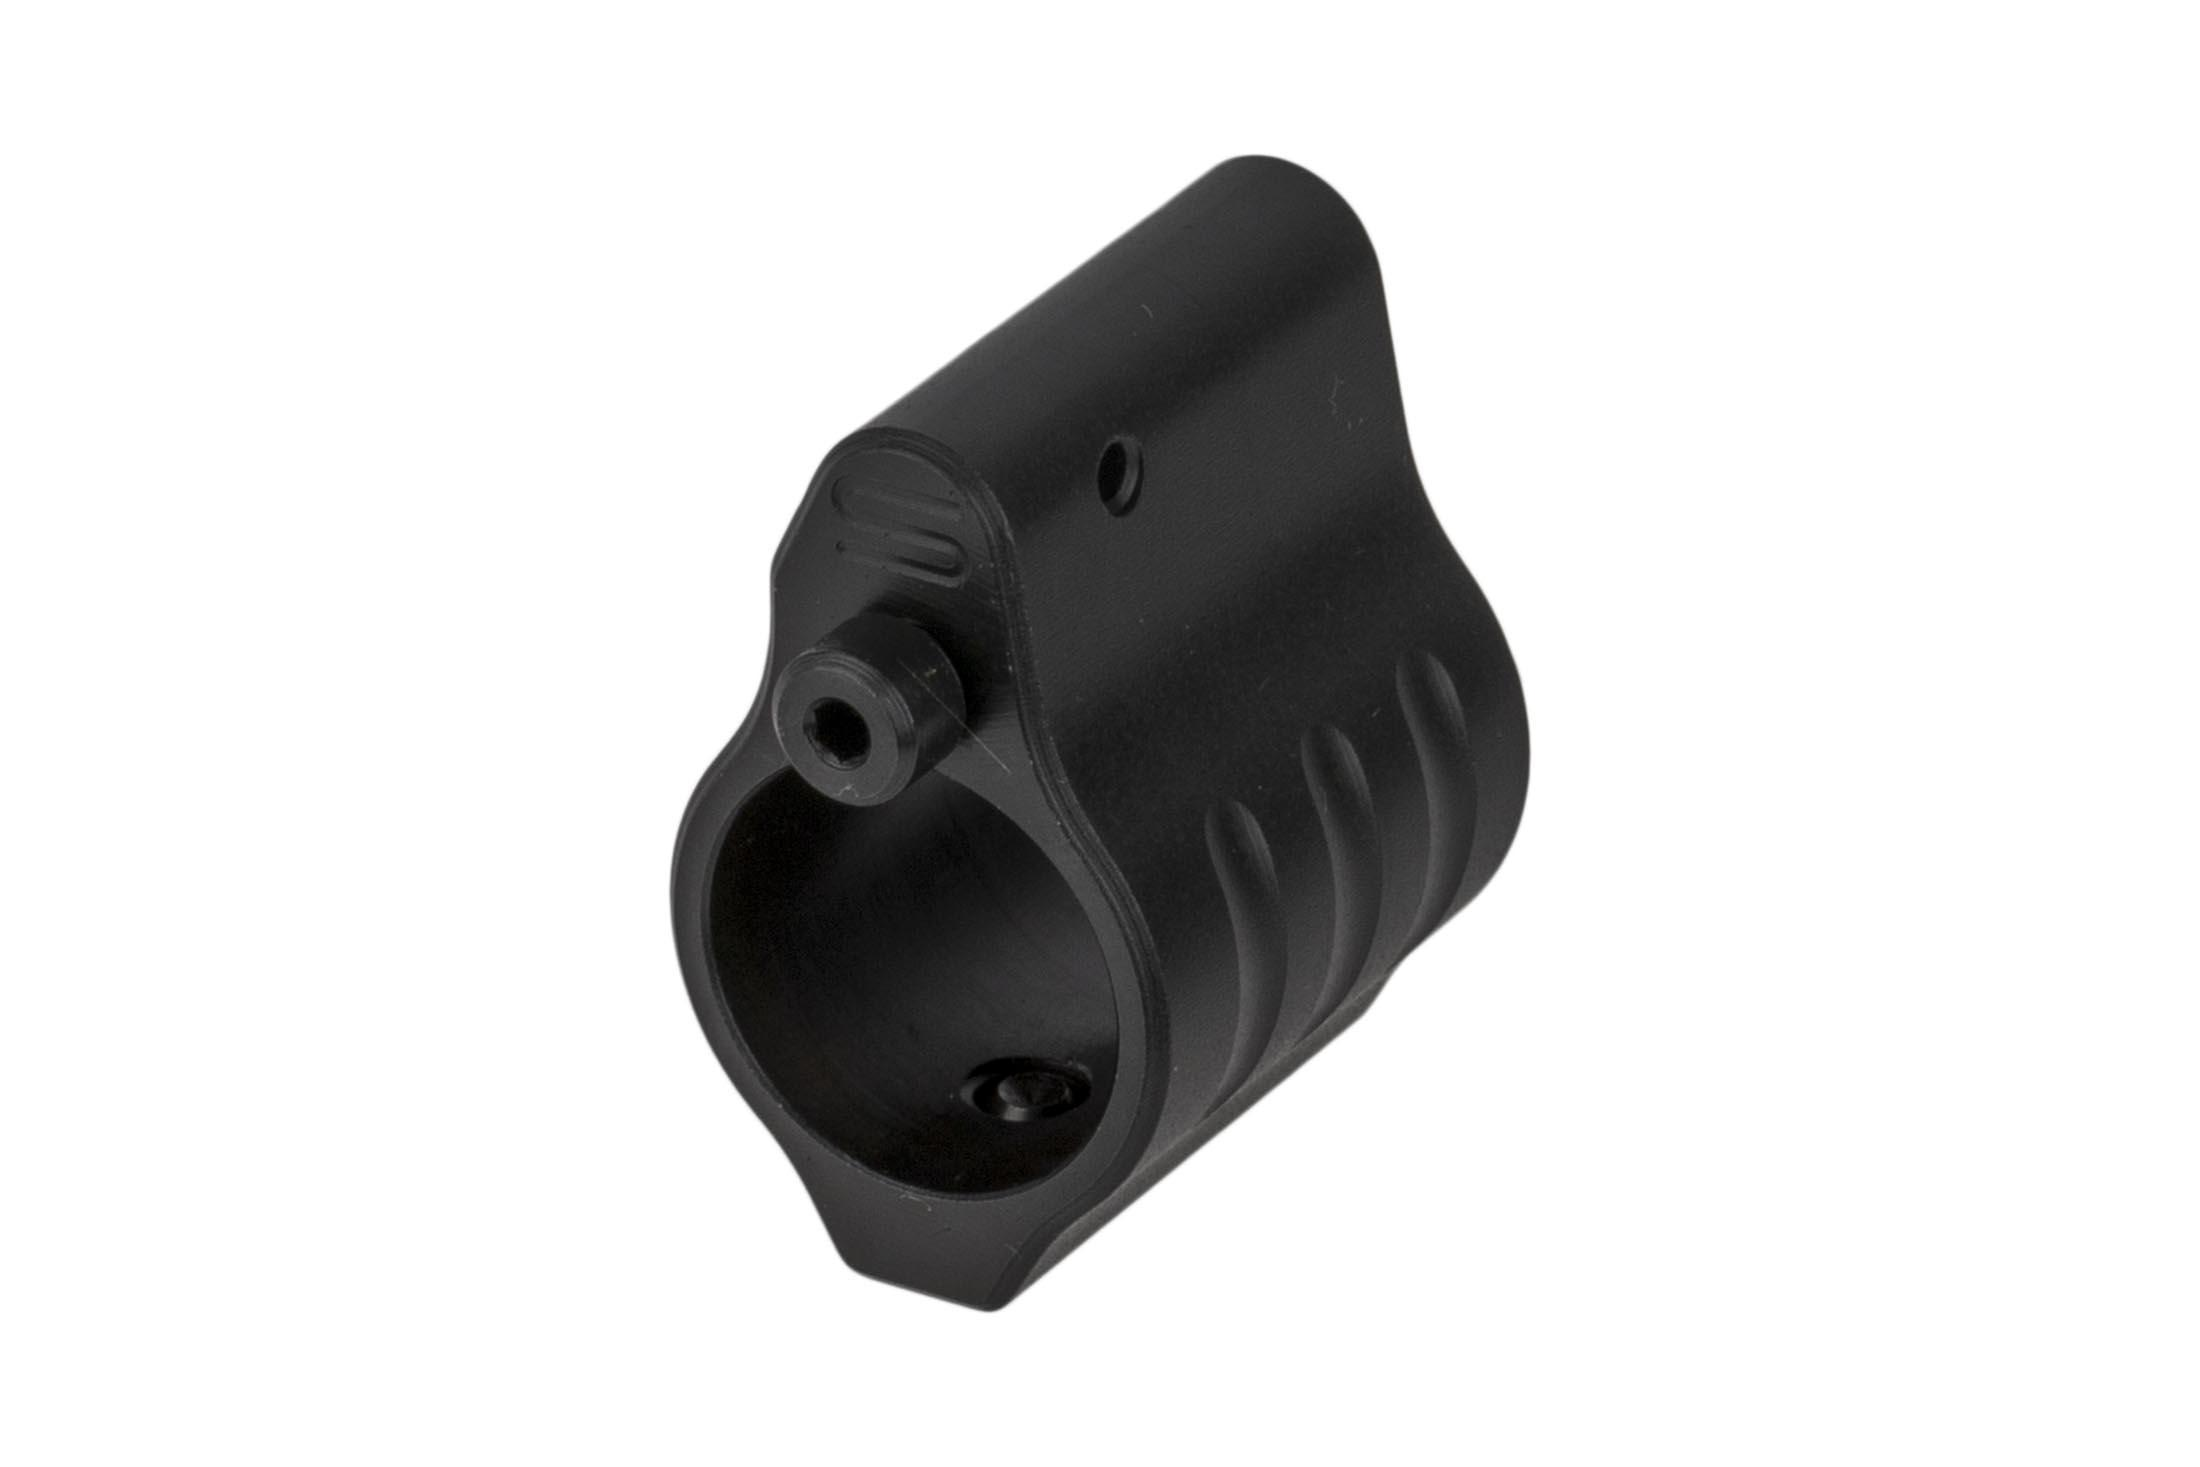 SLR Rifleworks Sentry 6 adjustable gas block for .625 inch barrels includes a gas tube roll pin and adjustment tool